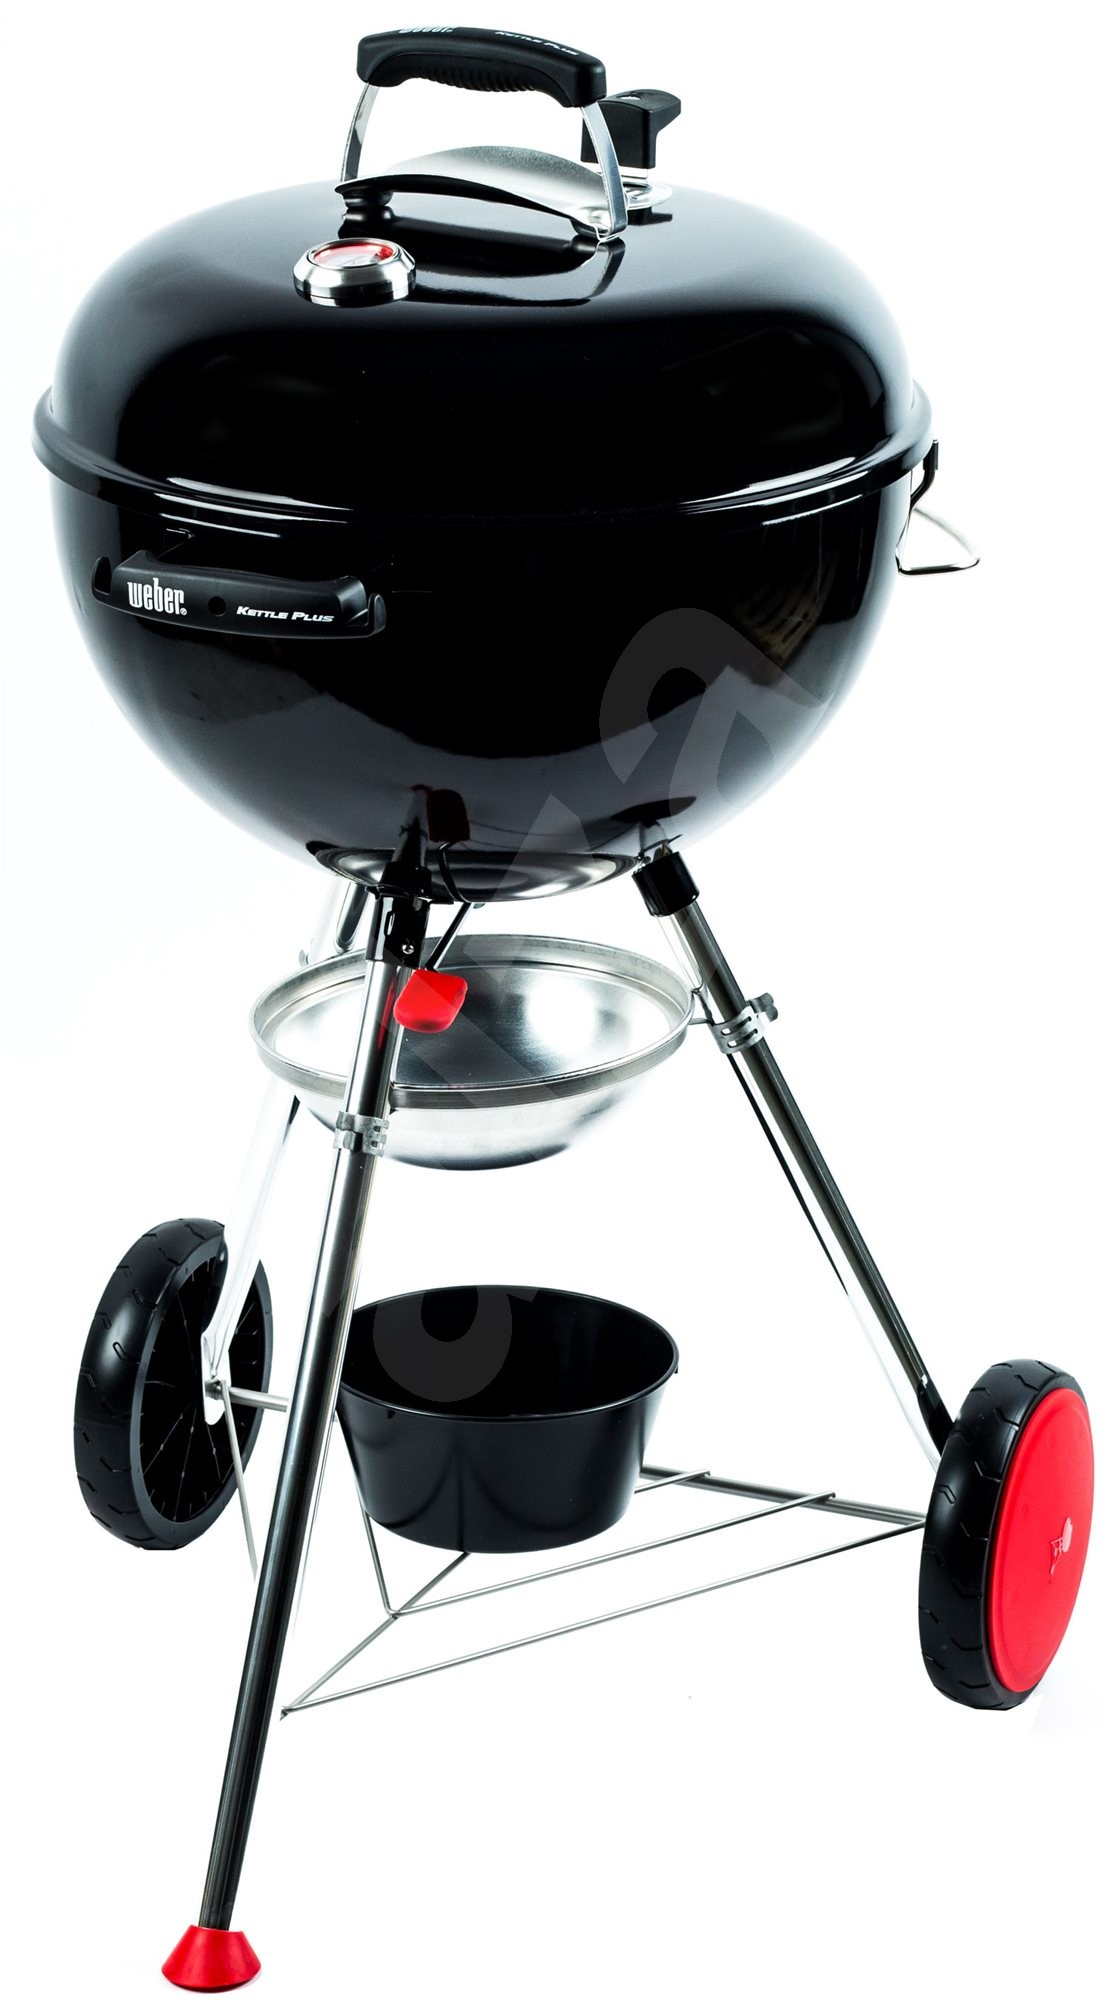 Weber kettle plus 47 gril - Weber kettle plus ...